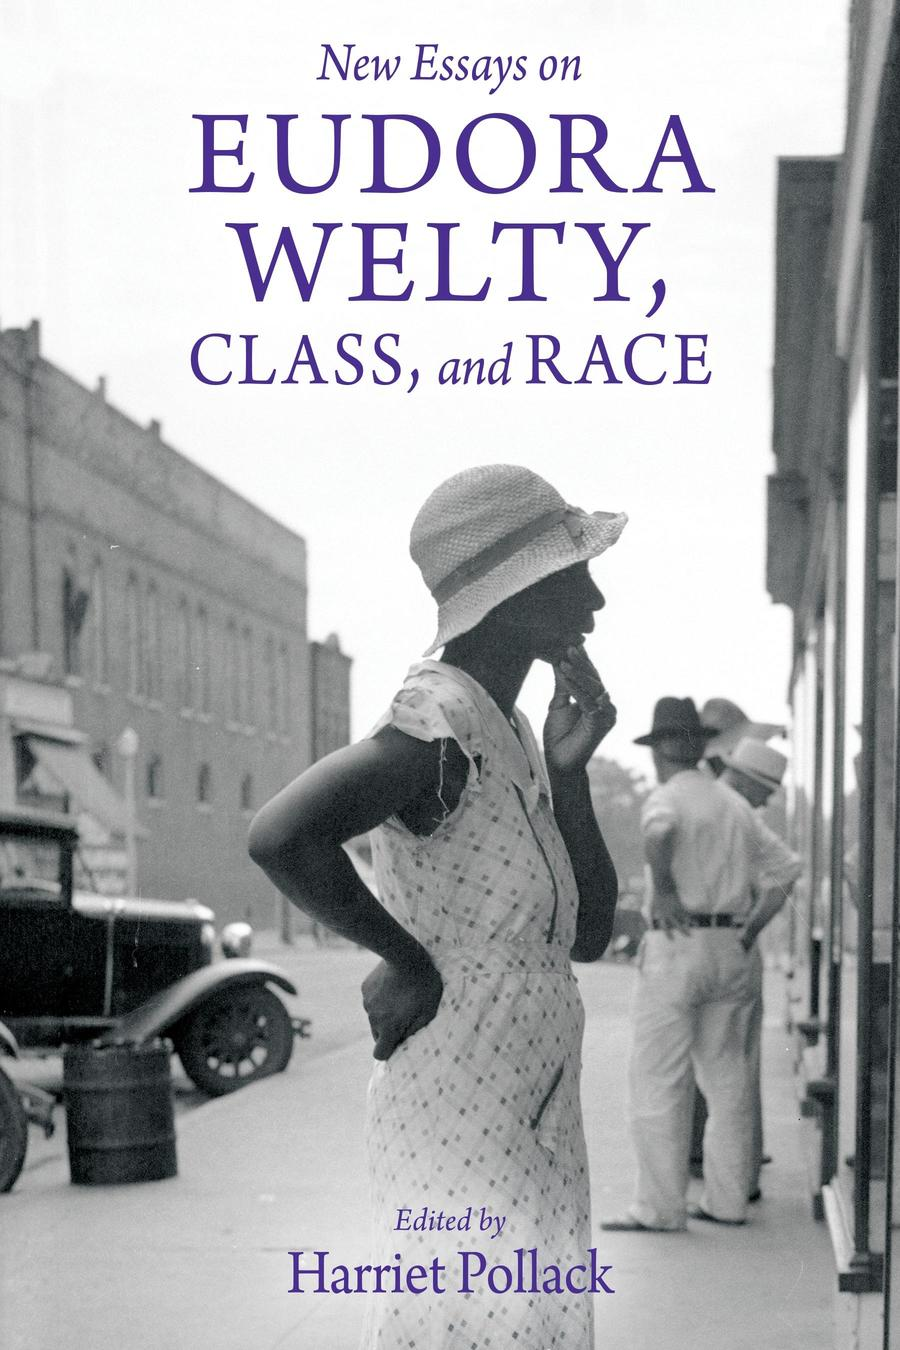 Cover of Pollack's New Essays on Eudora Welty, Class, and Race